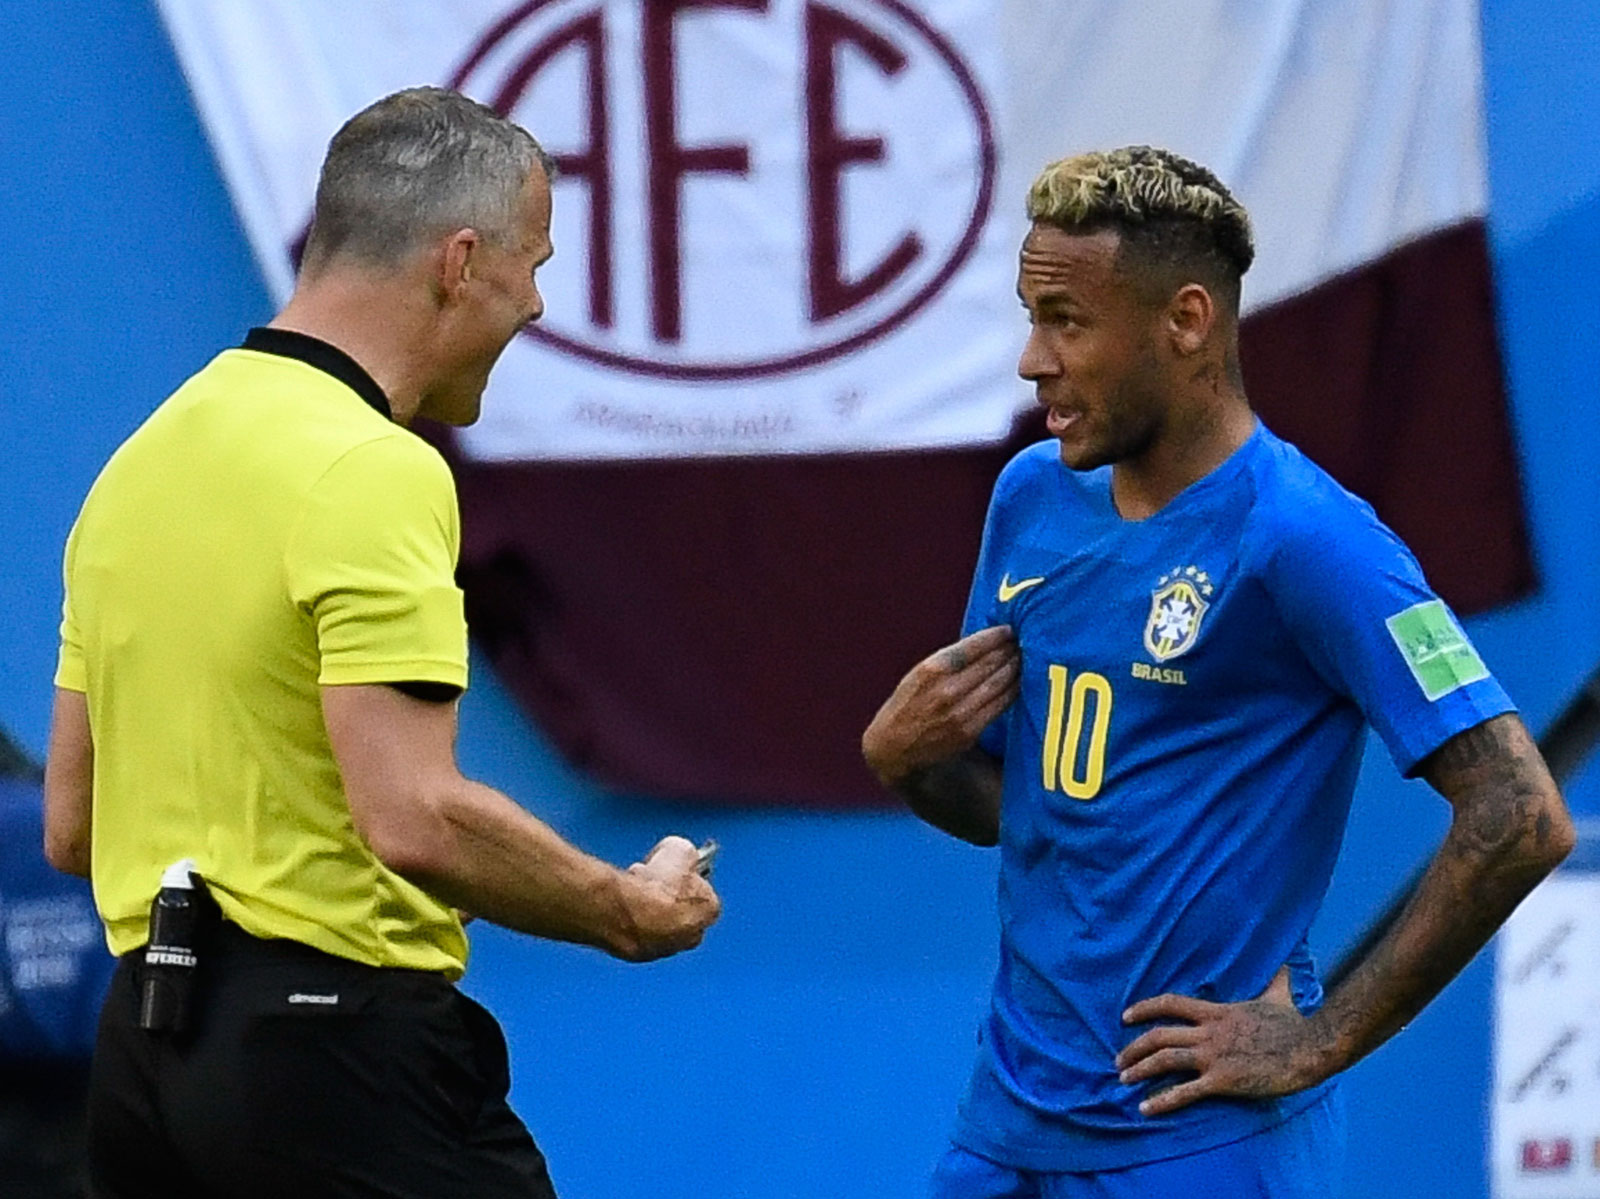 Neymar speaks to the referee in Brazil's match vs. Costa Rica